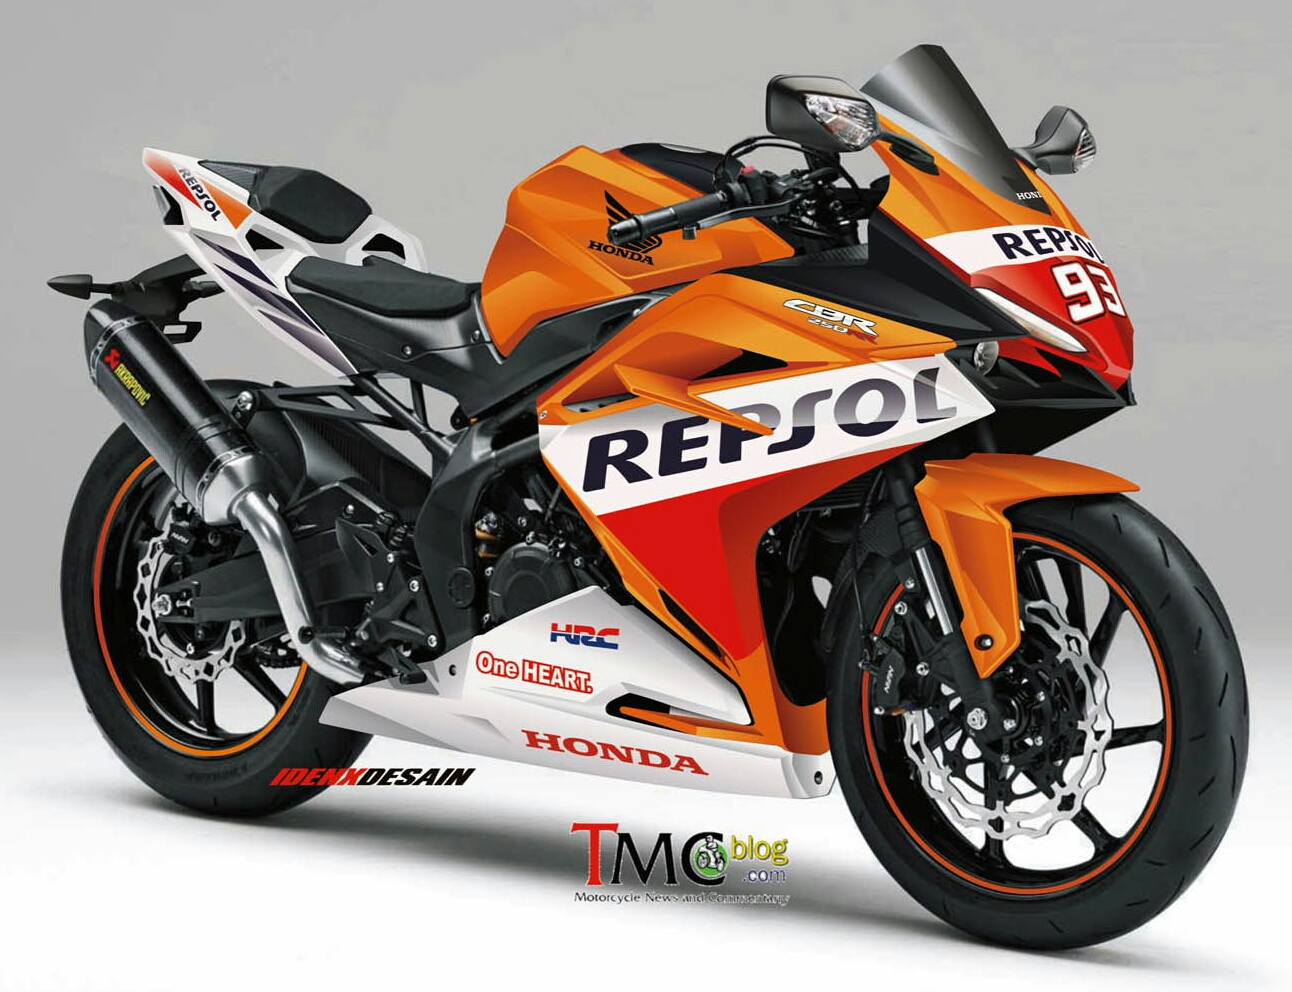 2017 Honda Cbr250rr Cbr300rr Coming For The R3 Ninja